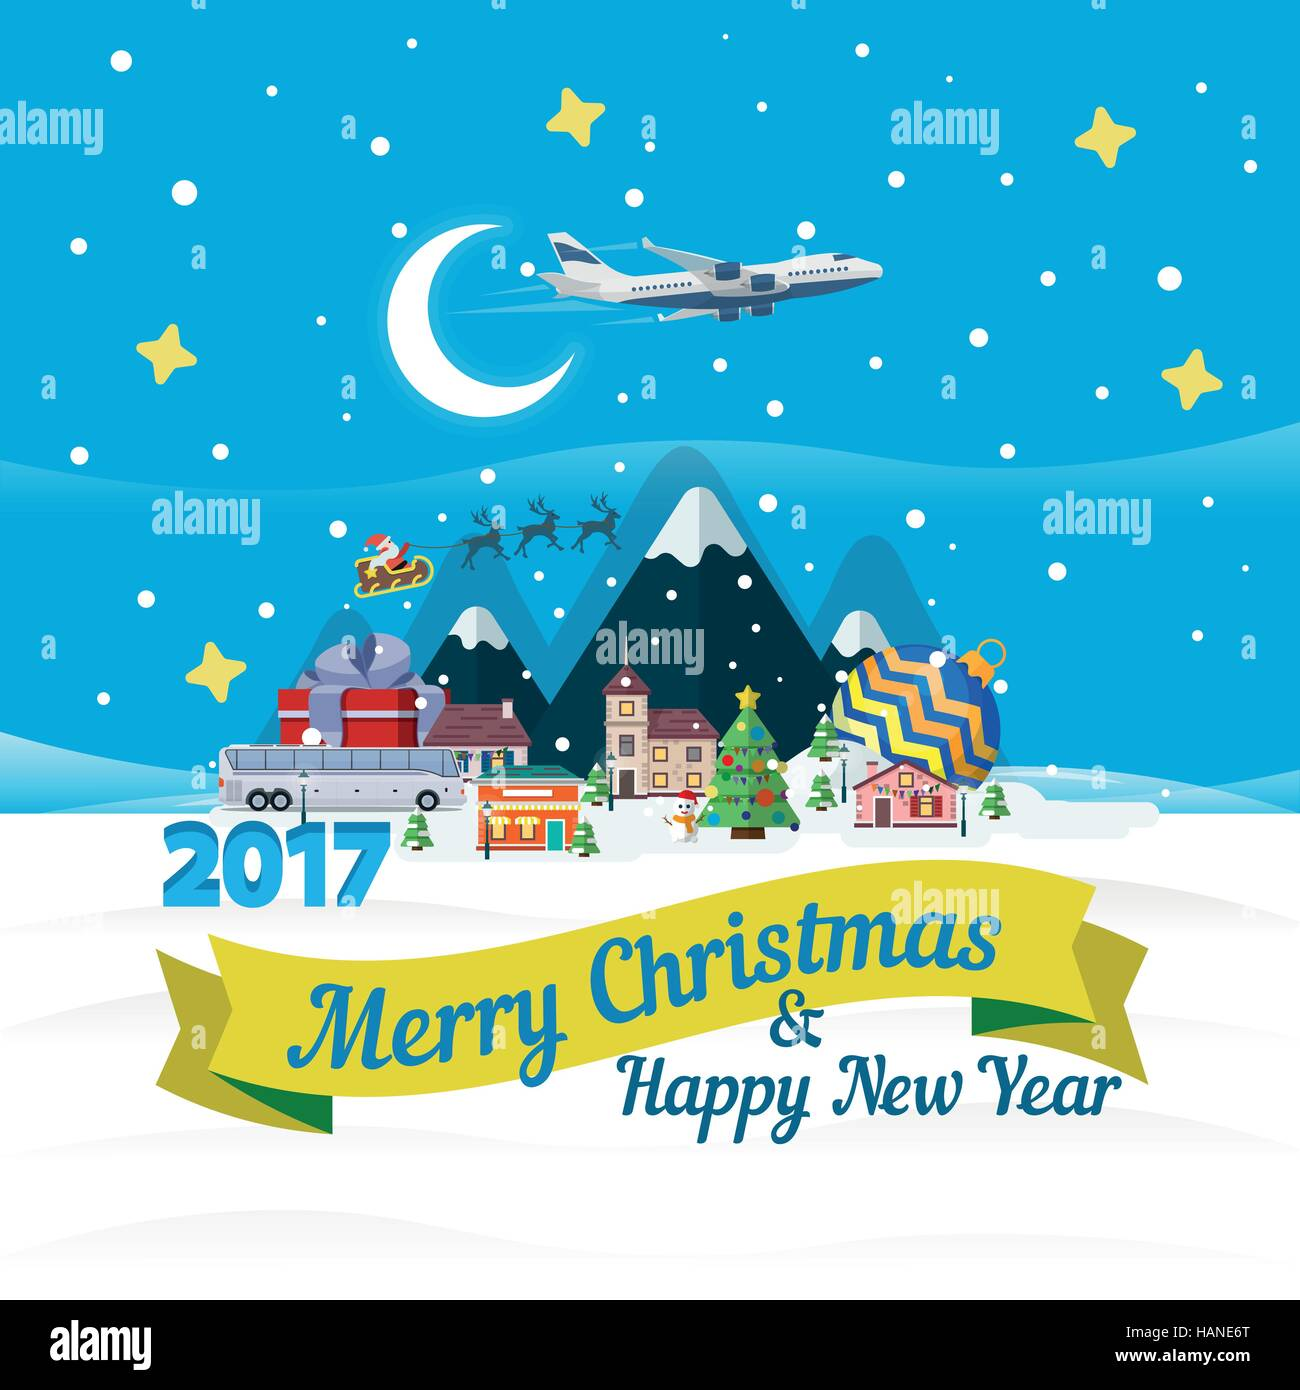 merry christmas and happy new year flat banner vector illustration for the website calendar ads banners winter landscape